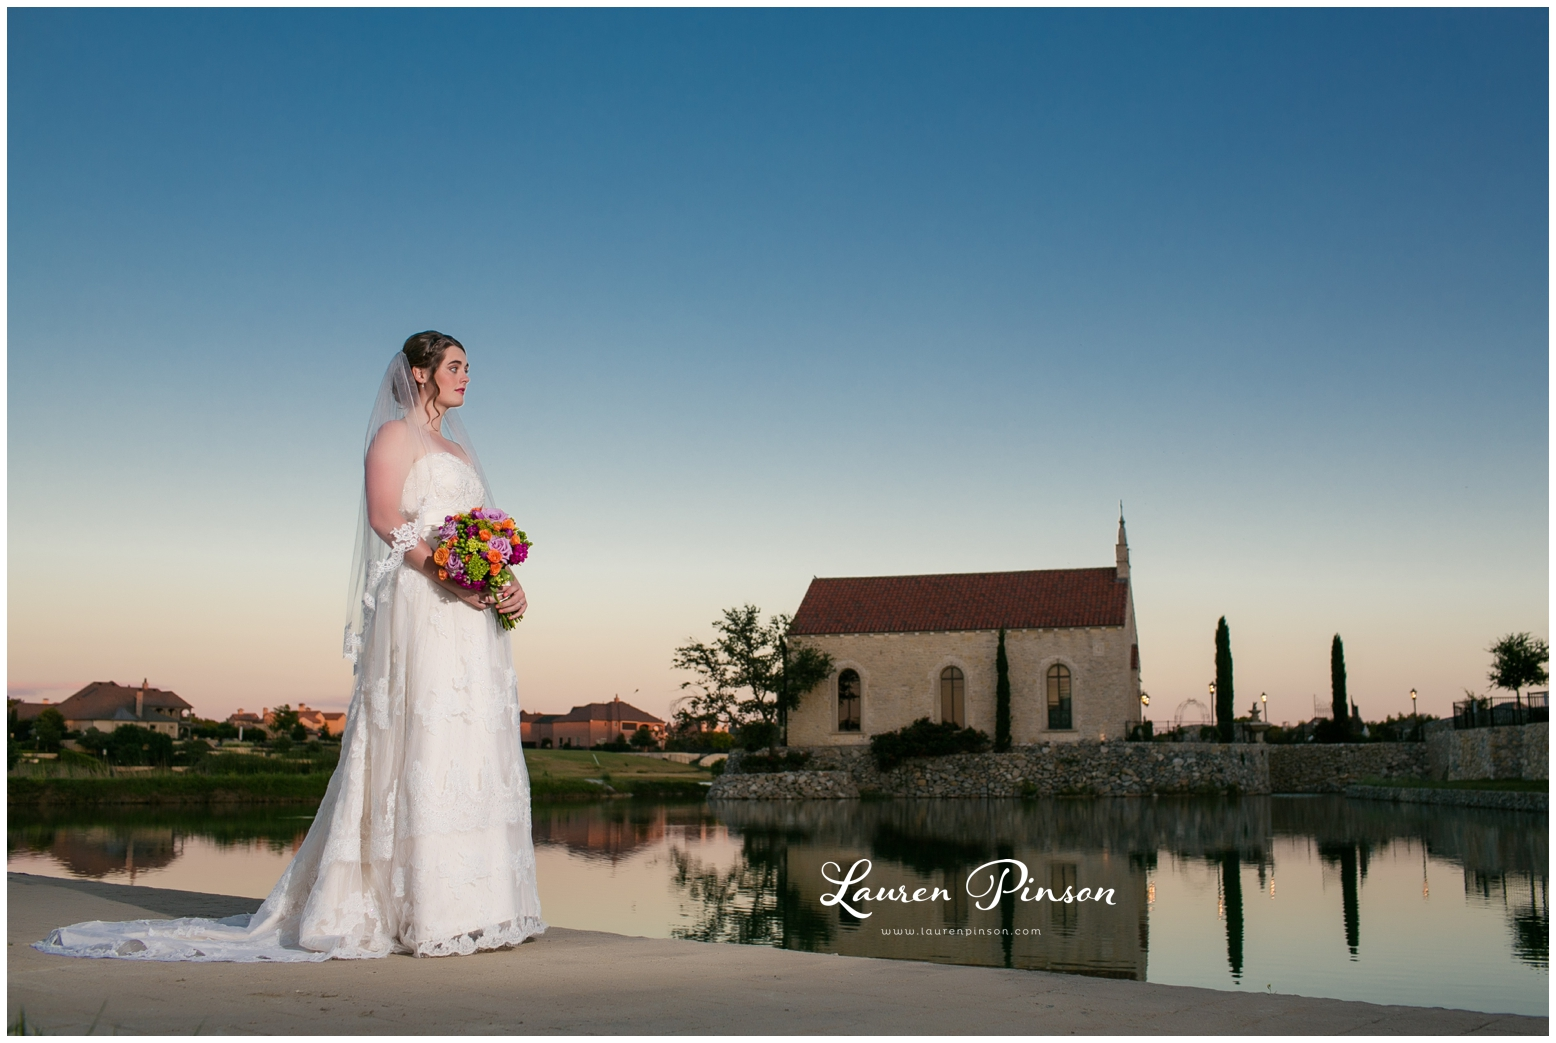 adriactica-village-bella-donna-chapel-mckinney-texas-wedding-photographer-sherman-northtexas-bridal-portraits-photography_0202.jpg